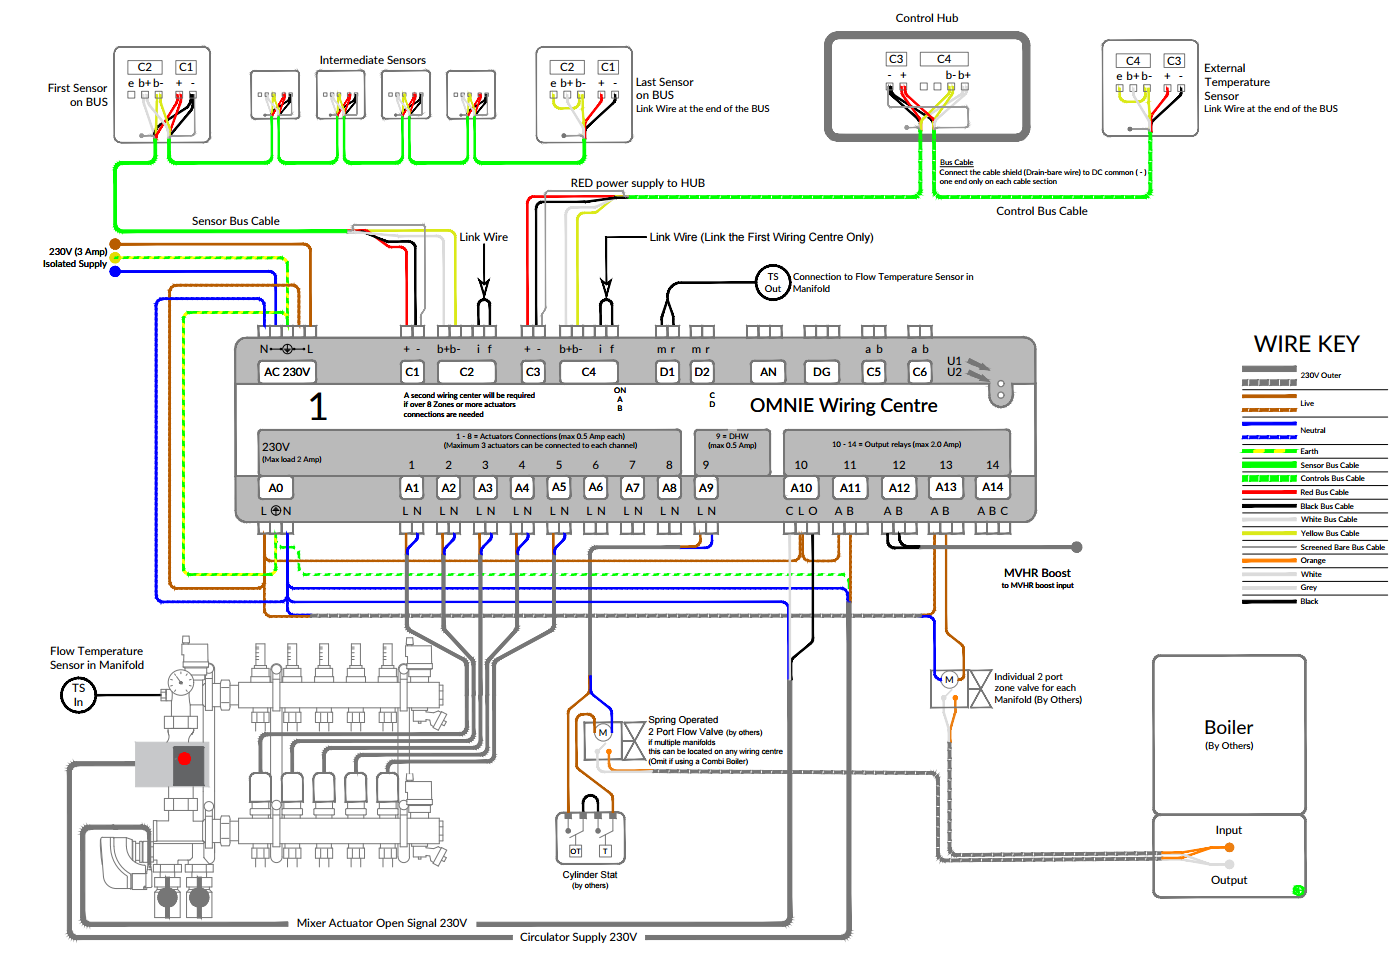 Arb Pressor Switch Wiring Diagram Moreover Warn Winch Wiring Diagram